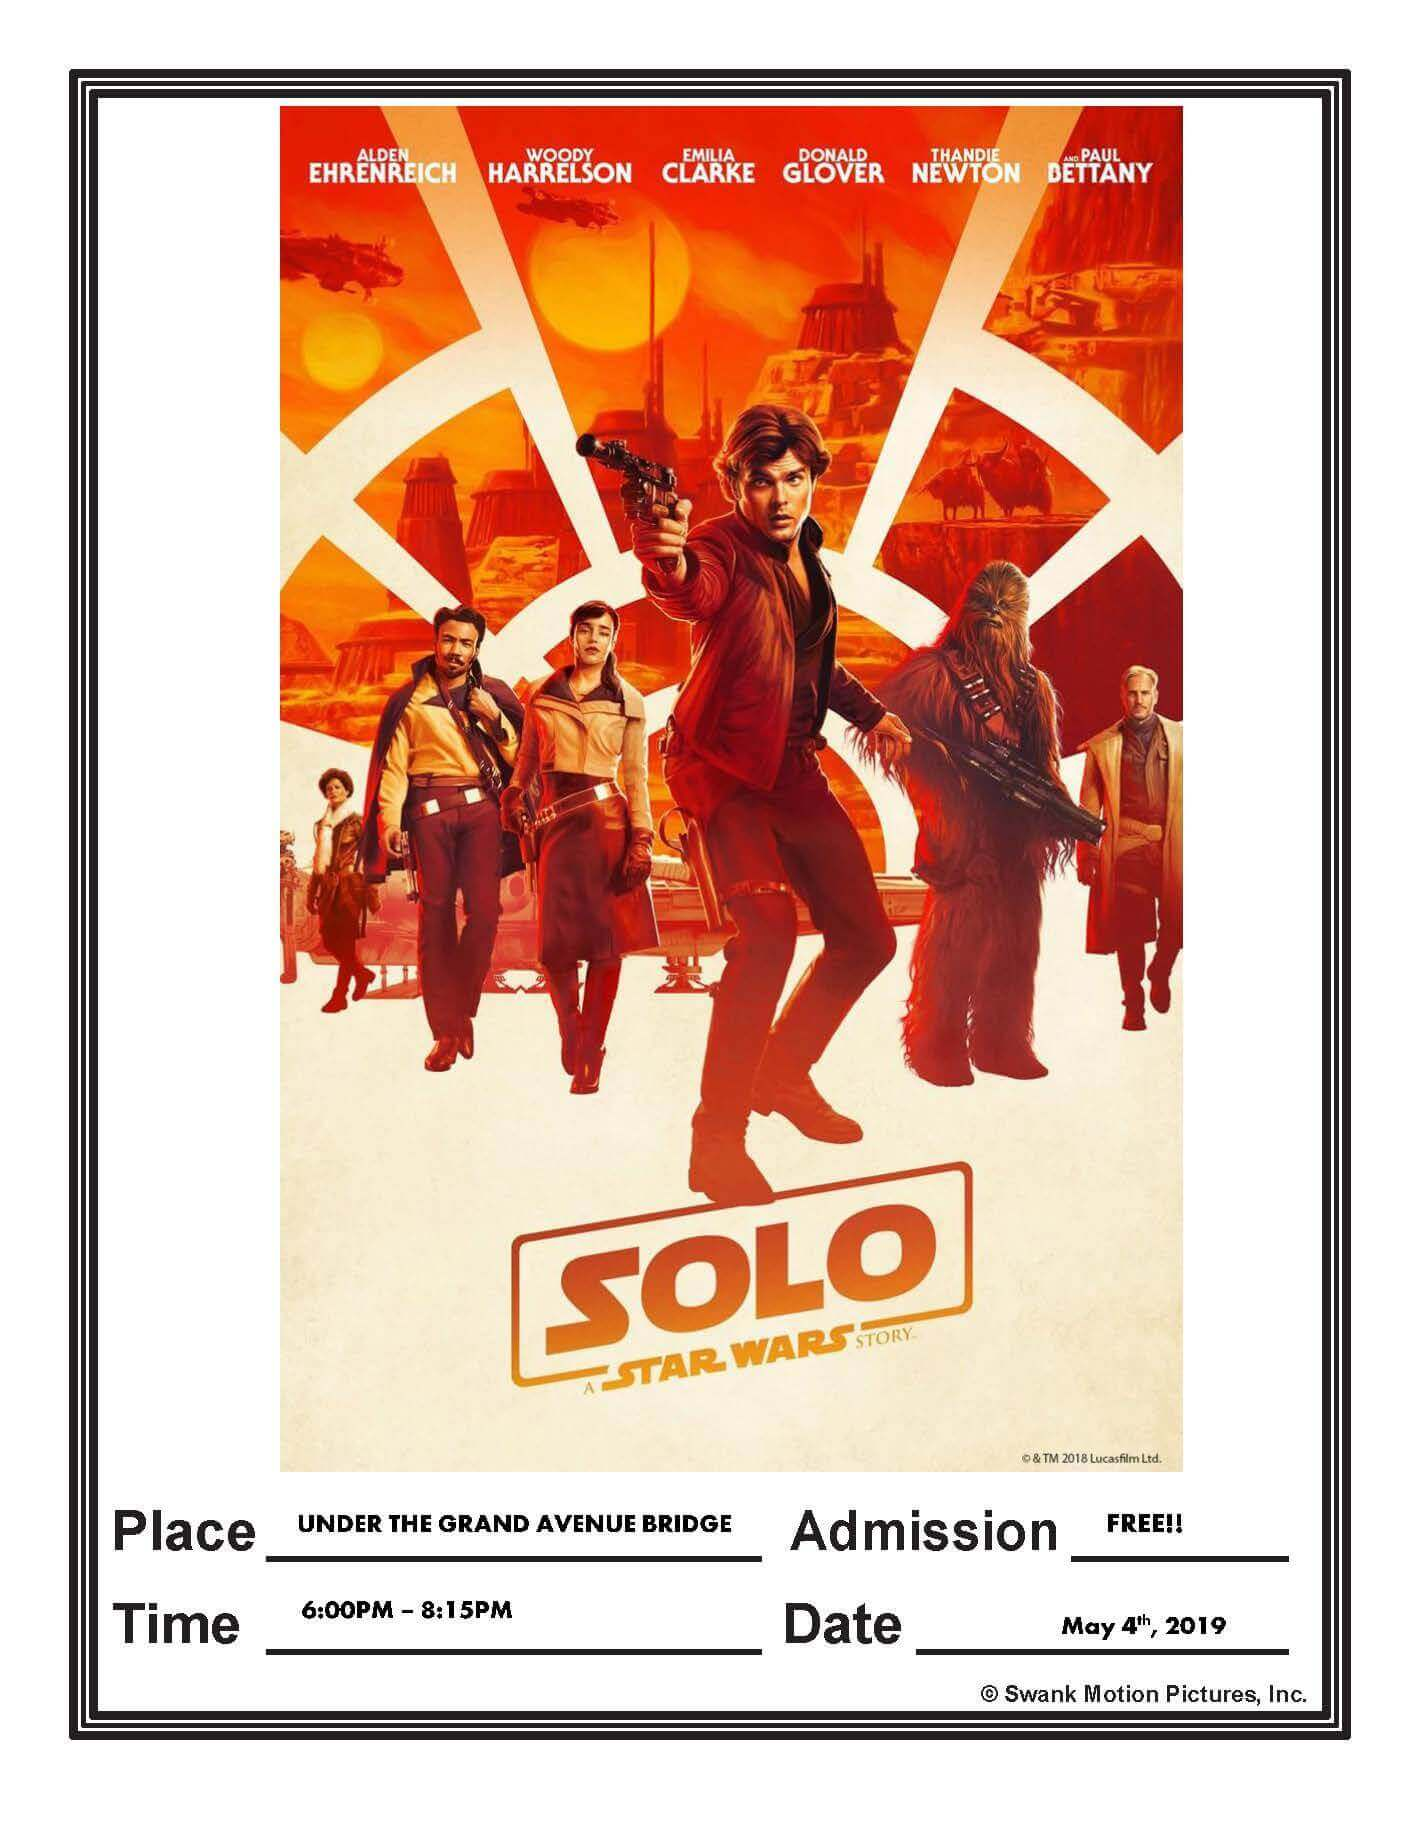 hans solo movie poster modified for Glenwood Springs event